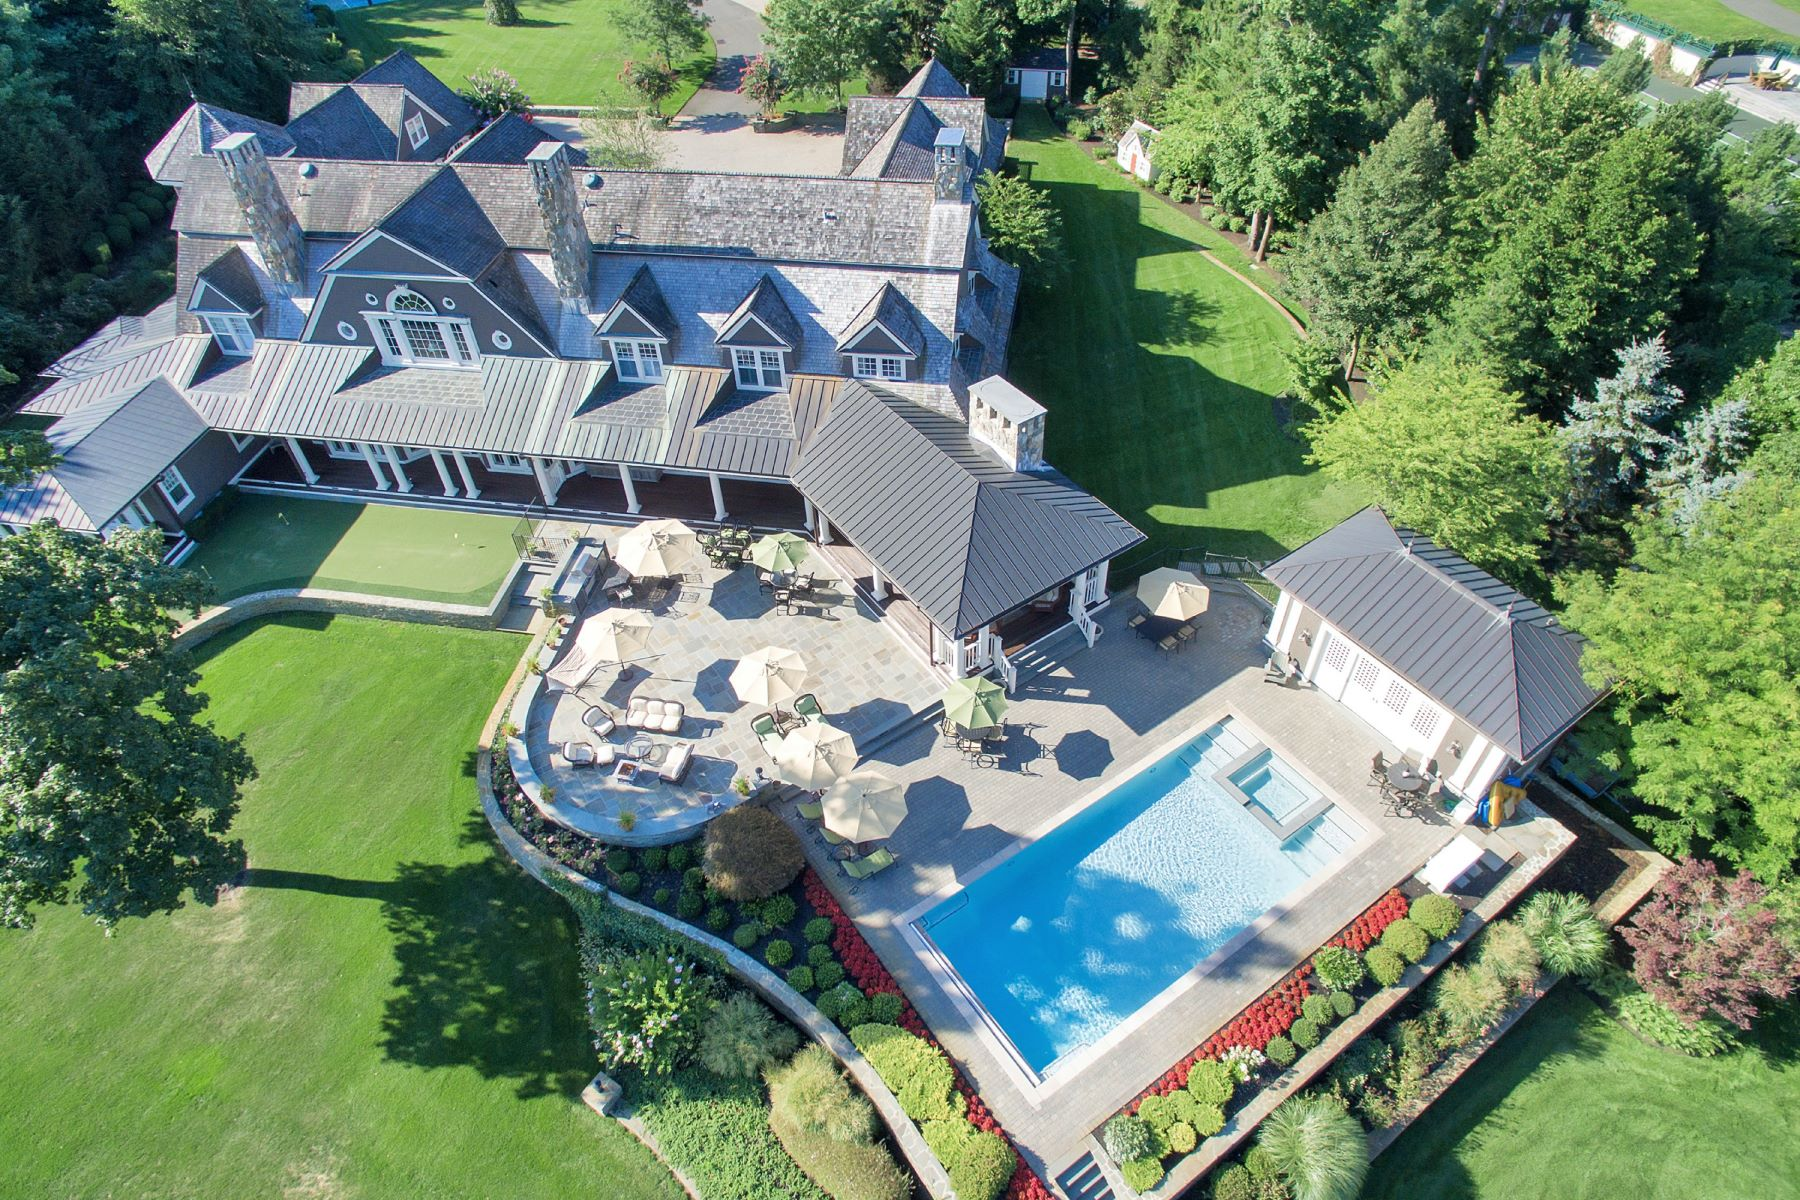 Casa Unifamiliar por un Venta en Riverblades Estate 74 West River Road Rumson, Nueva Jersey, 07760 Estados Unidos